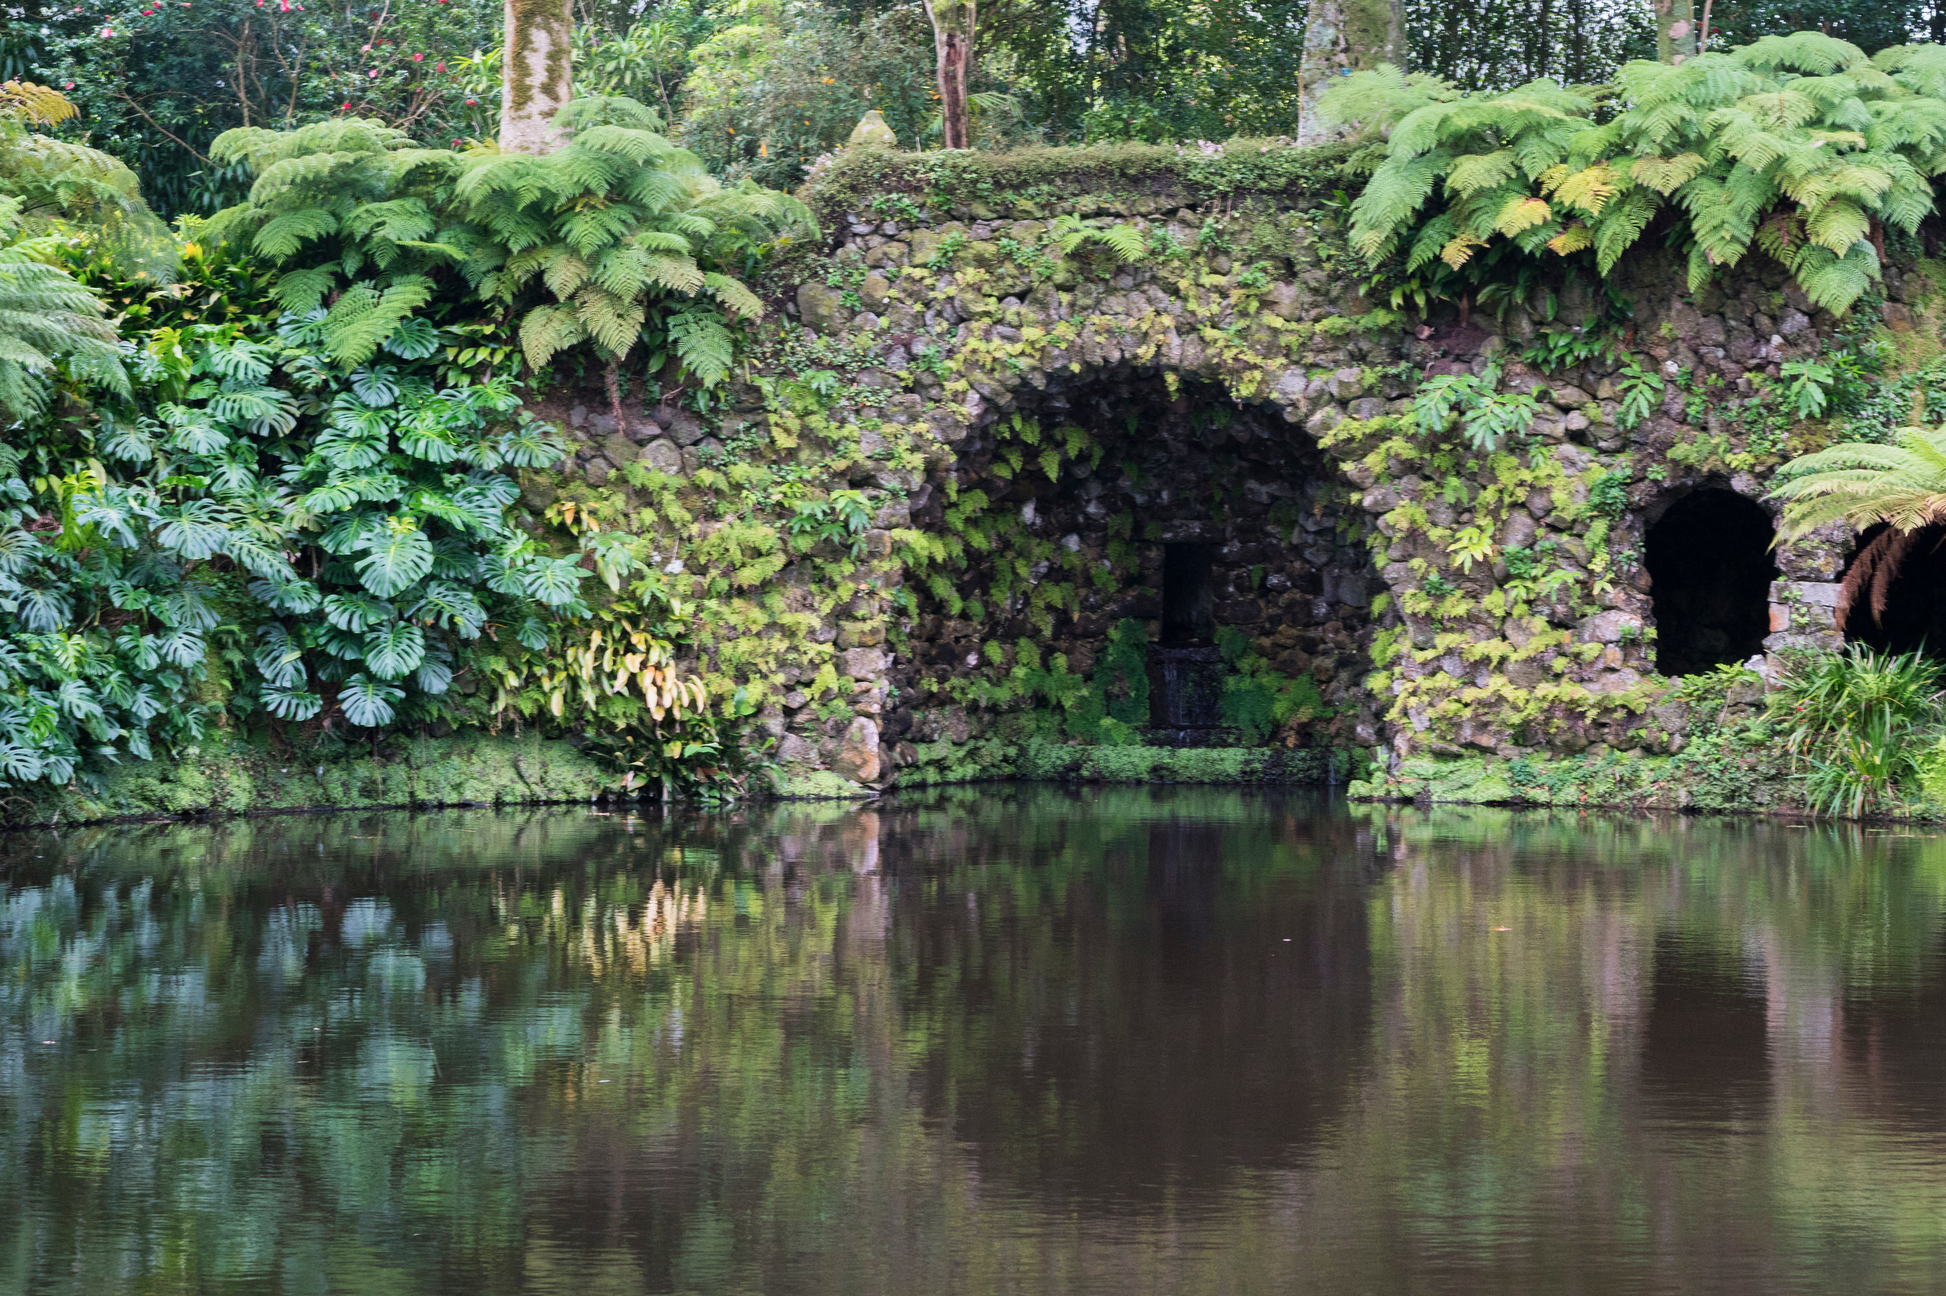 Terra Nostra Gardens, a serene, picturesque park & botanical garden dating to 1775, best known for its thermal baths and collection of roses and camellias.